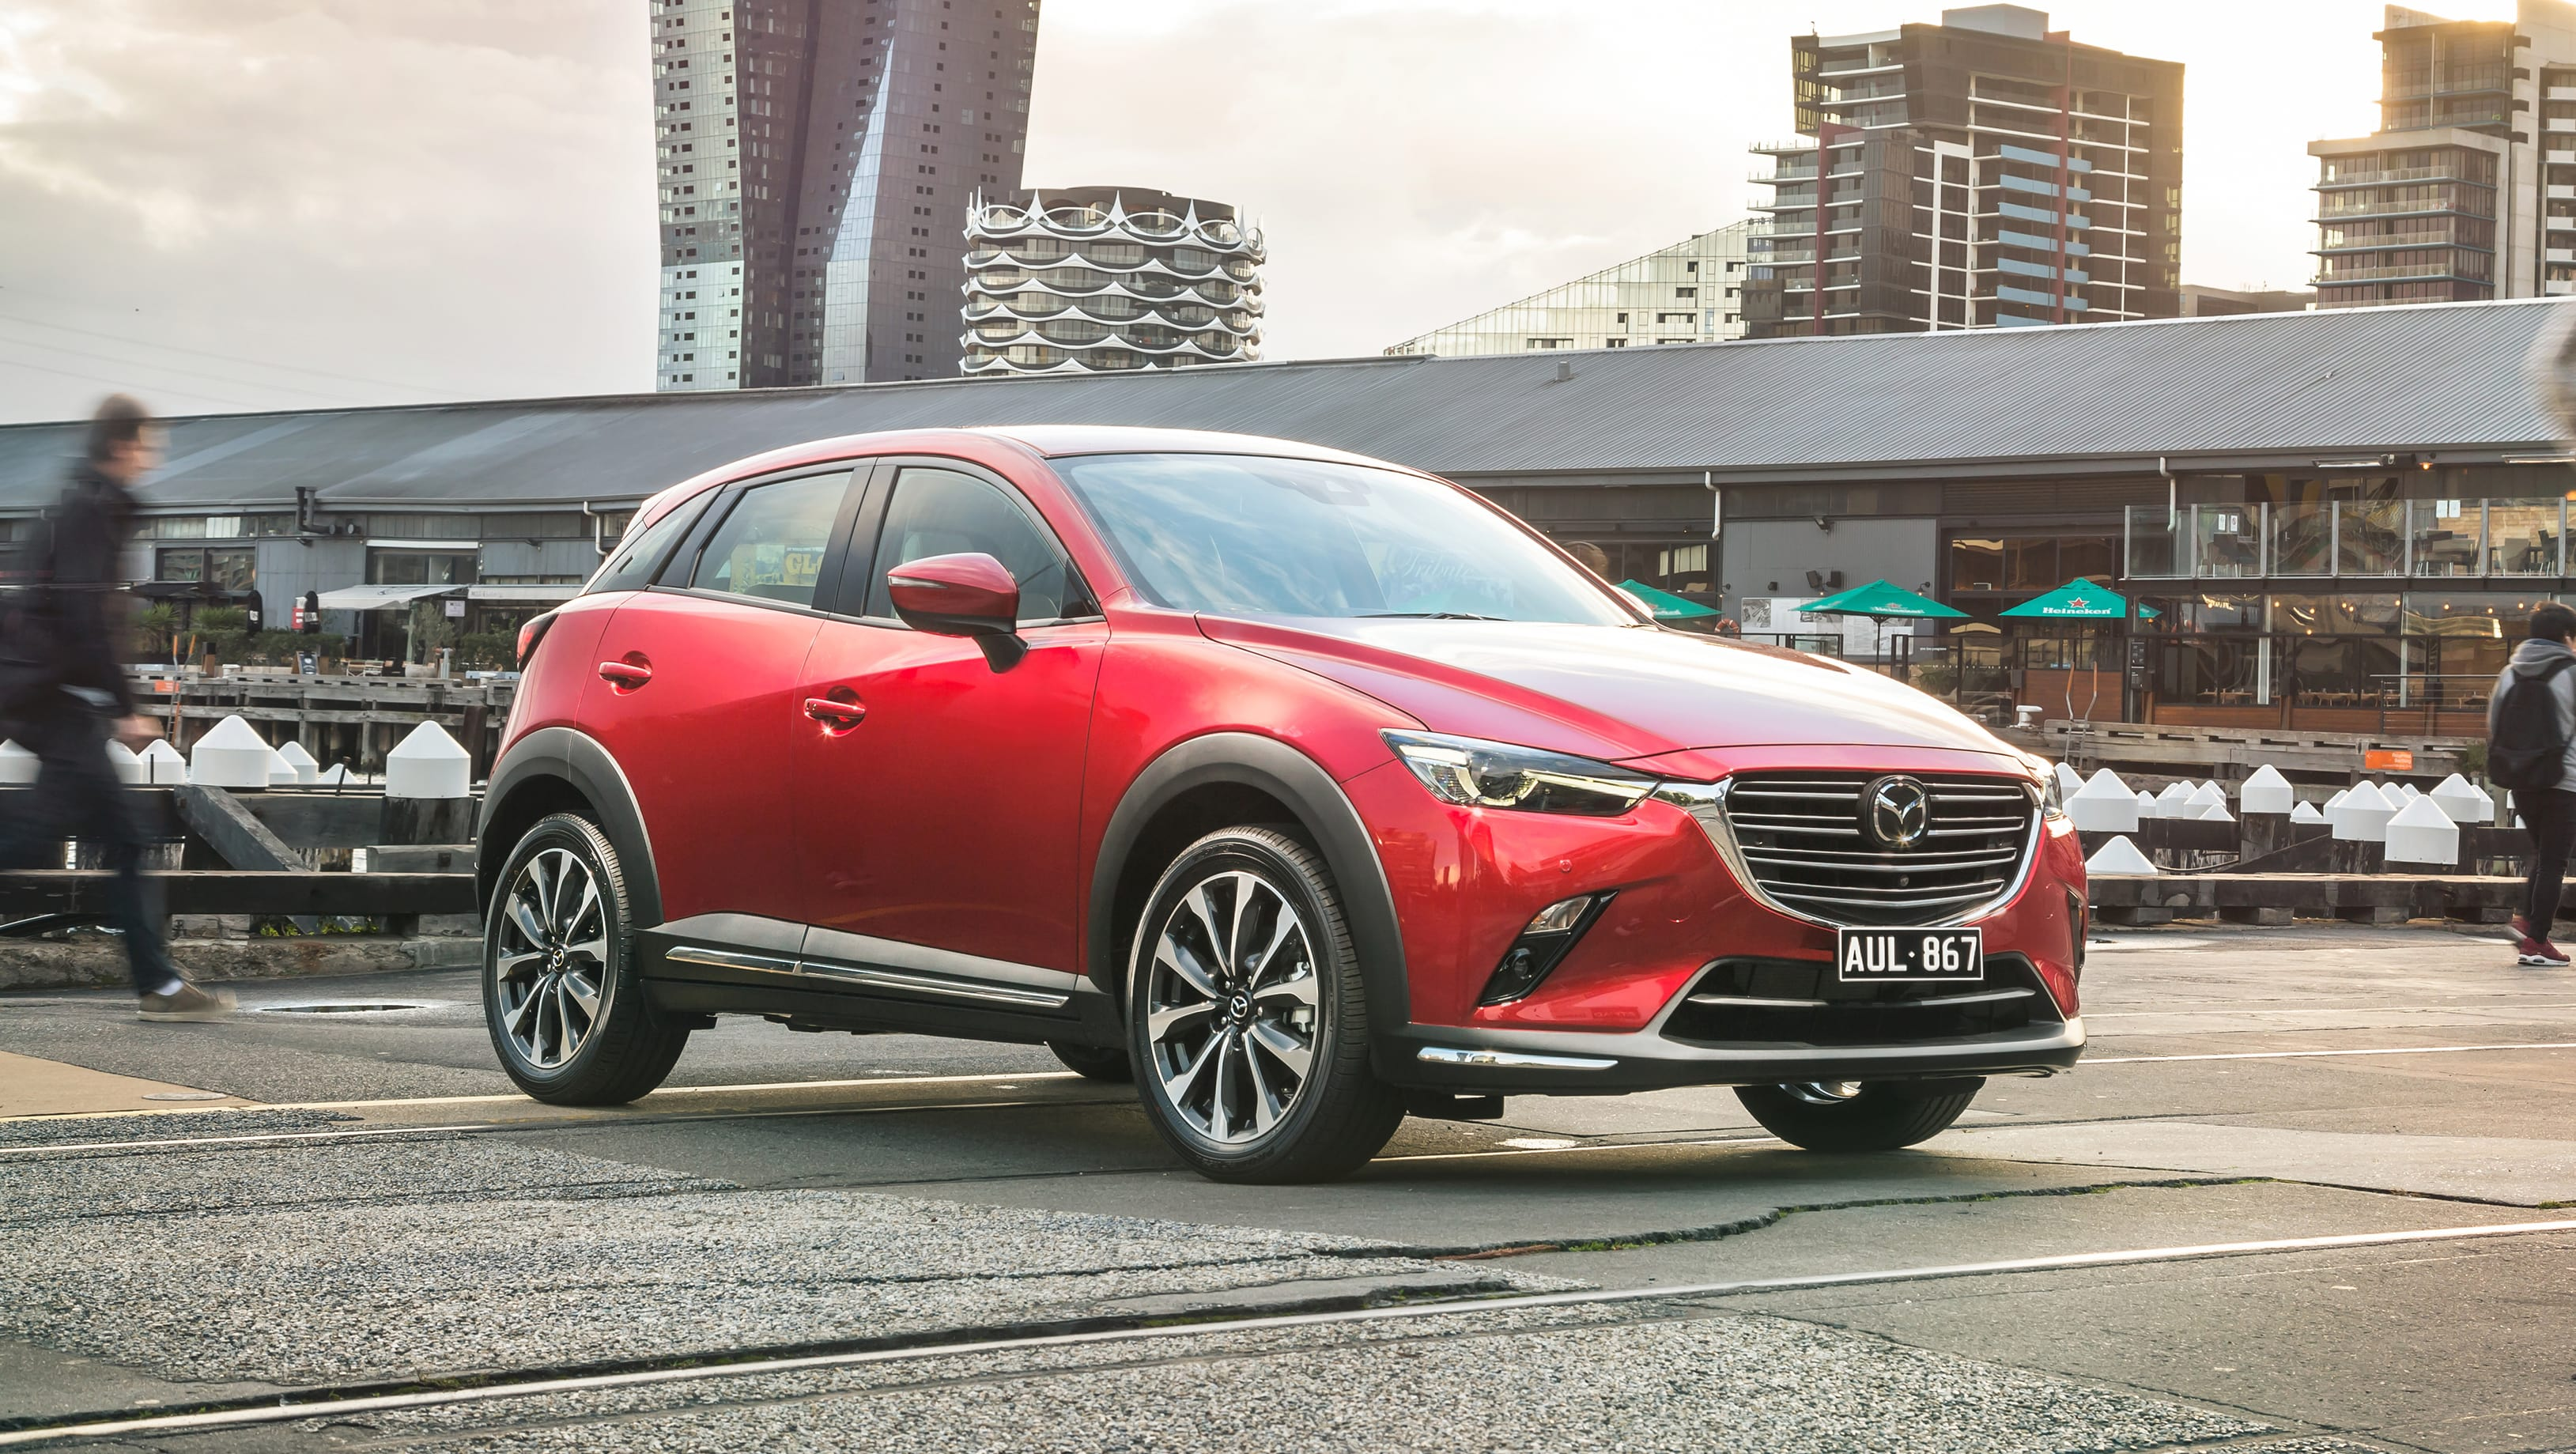 Mazda Cx 3 2019 Pricing And Spec Confirmed Car News Carsguide